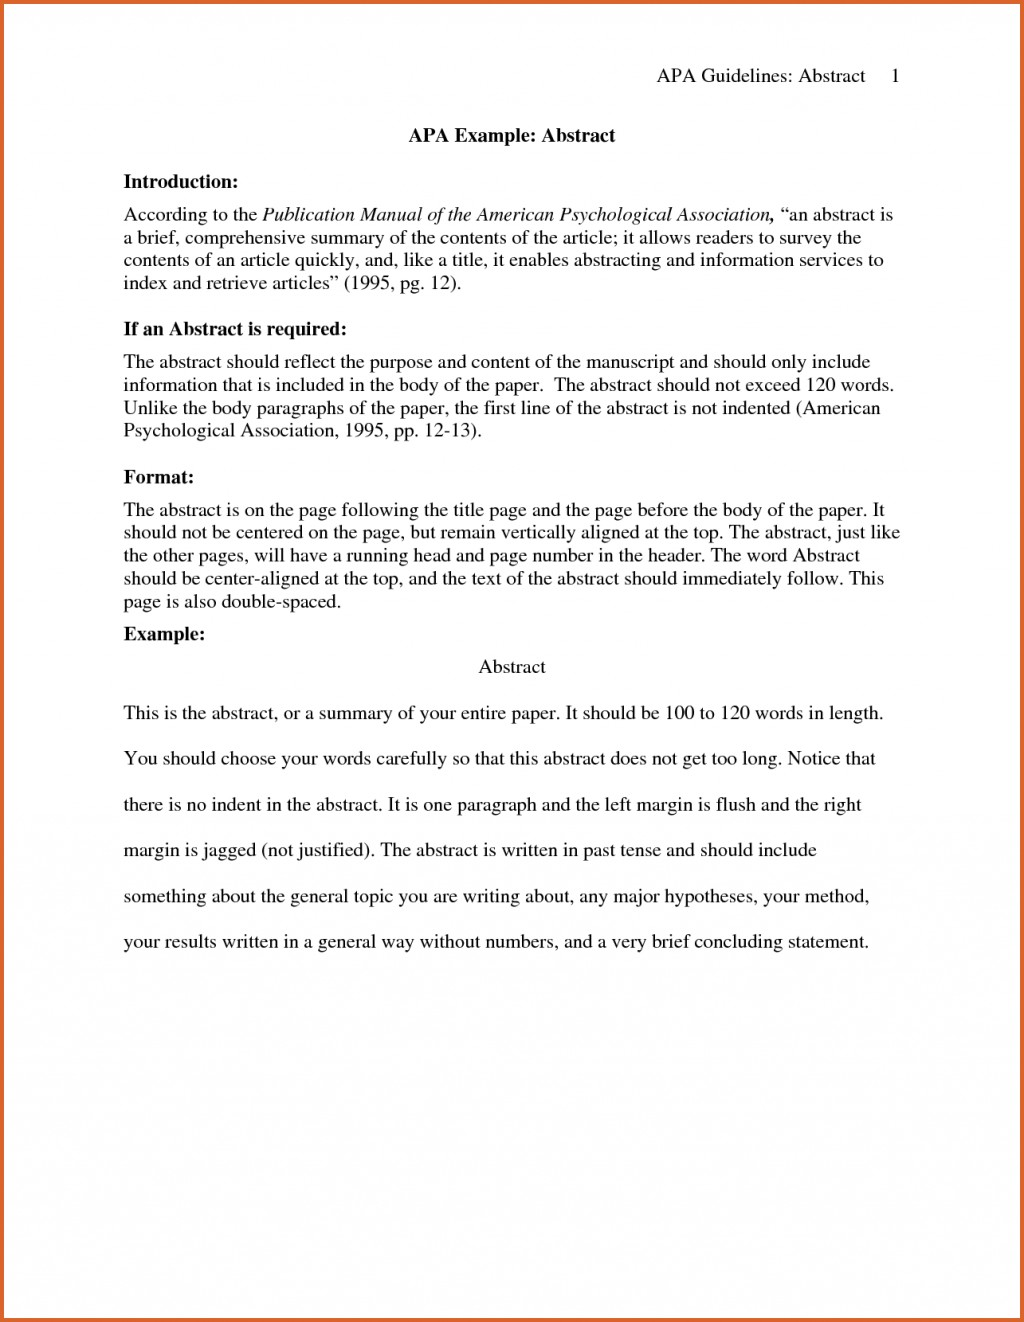 003 Ideas Collection Abstract Example Apa Sampleearch Paper Charming Of For Sensational Research Writing An A Style Sample Large